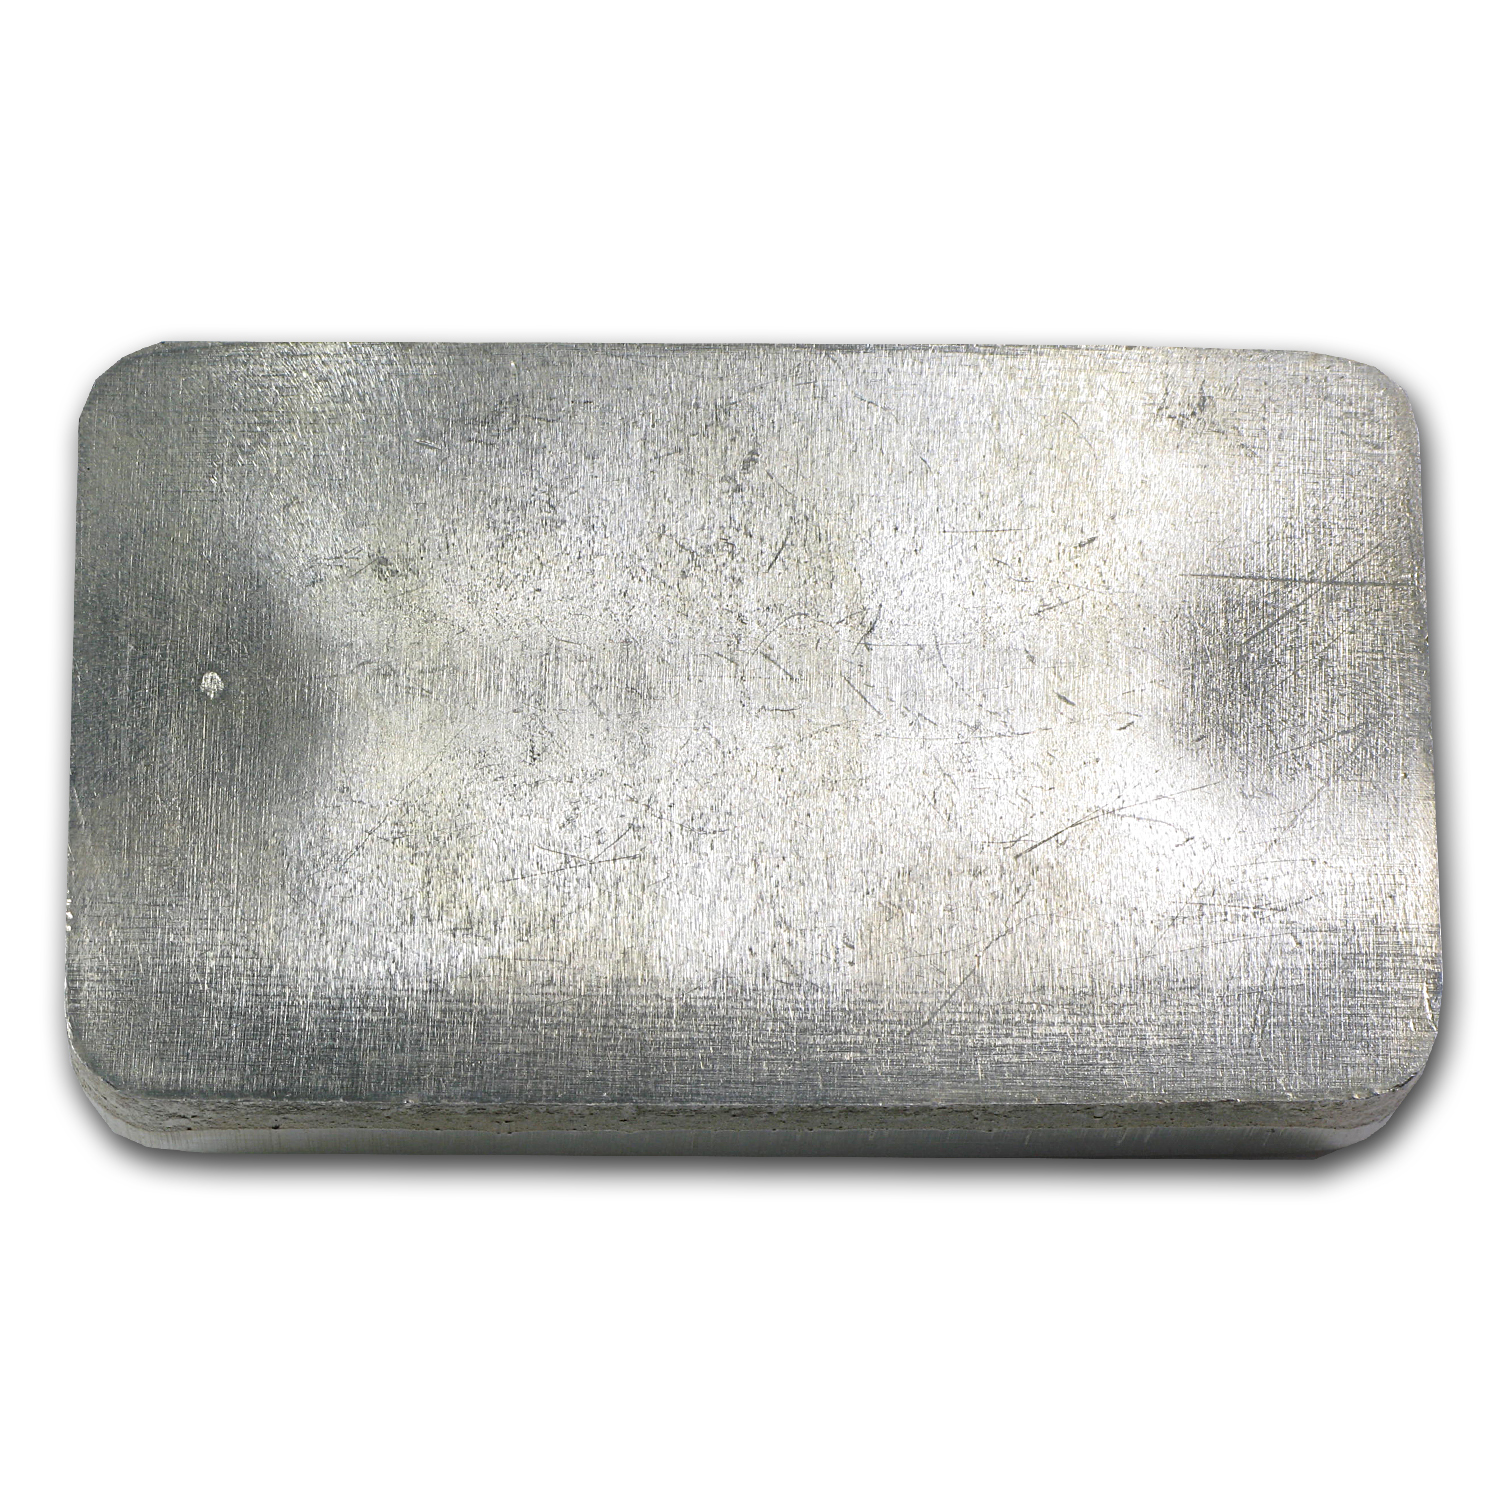 10 oz Silver Bars - Engelhard (Wide/Pressed)